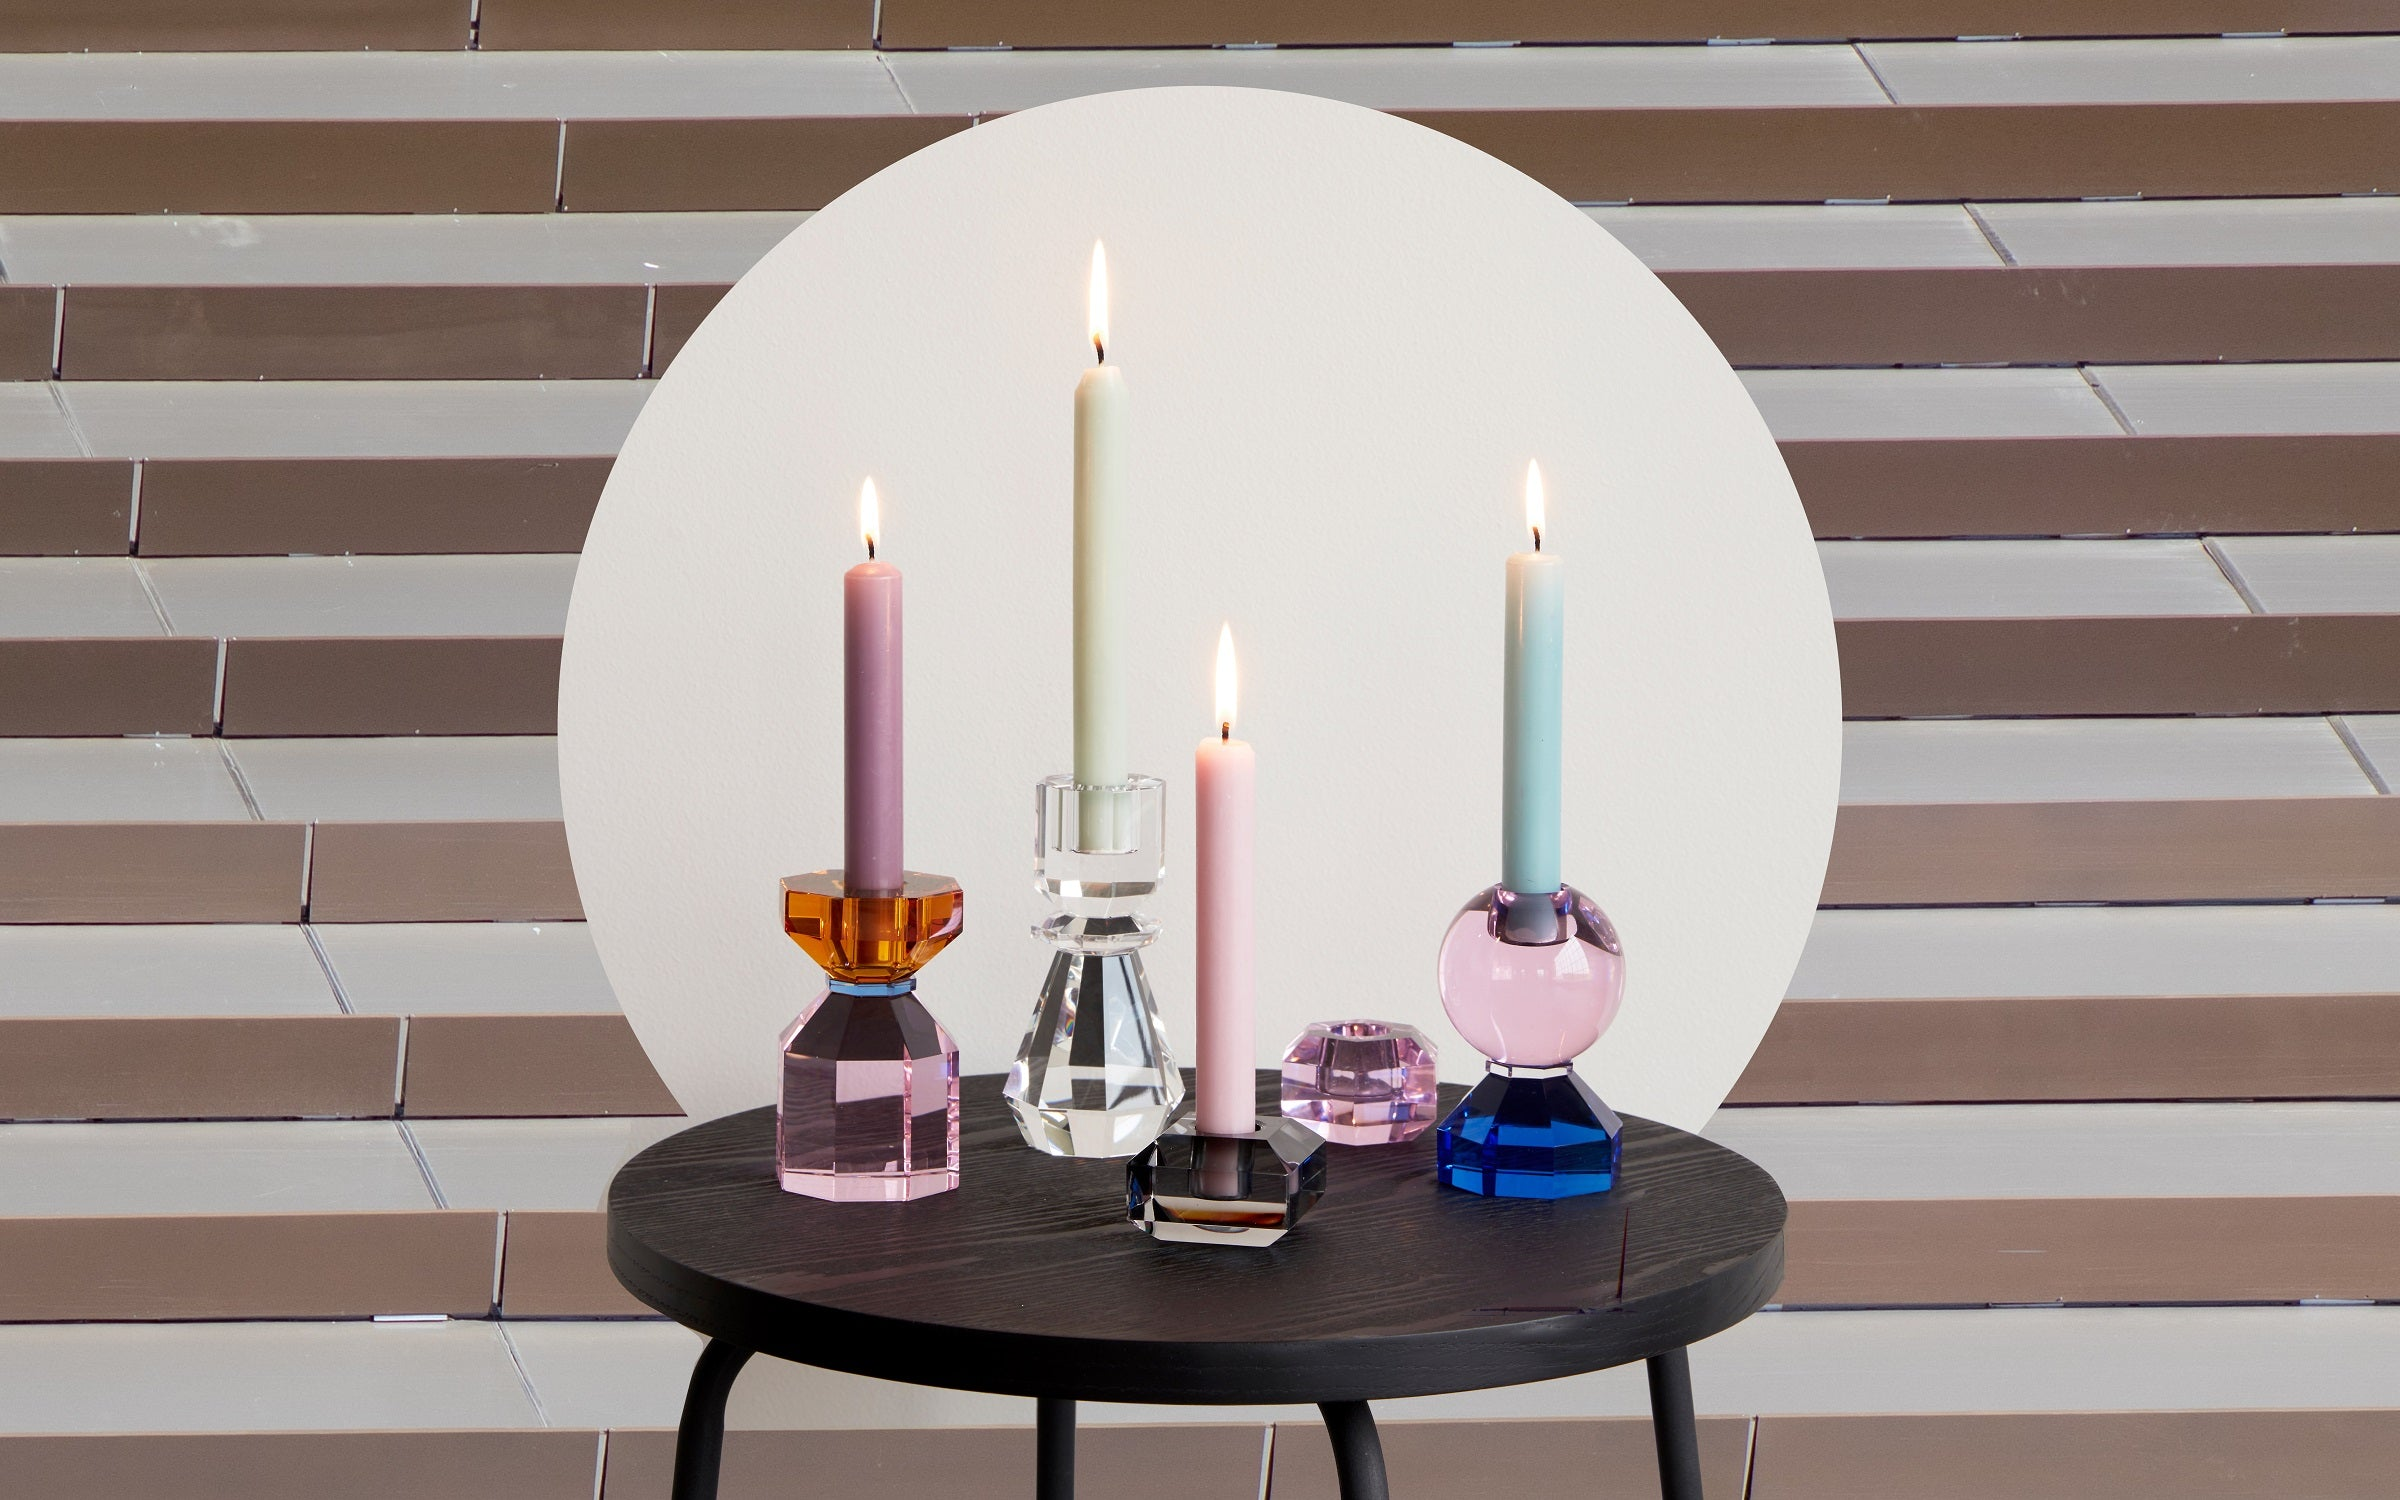 Tablescape: Candleholder Edition